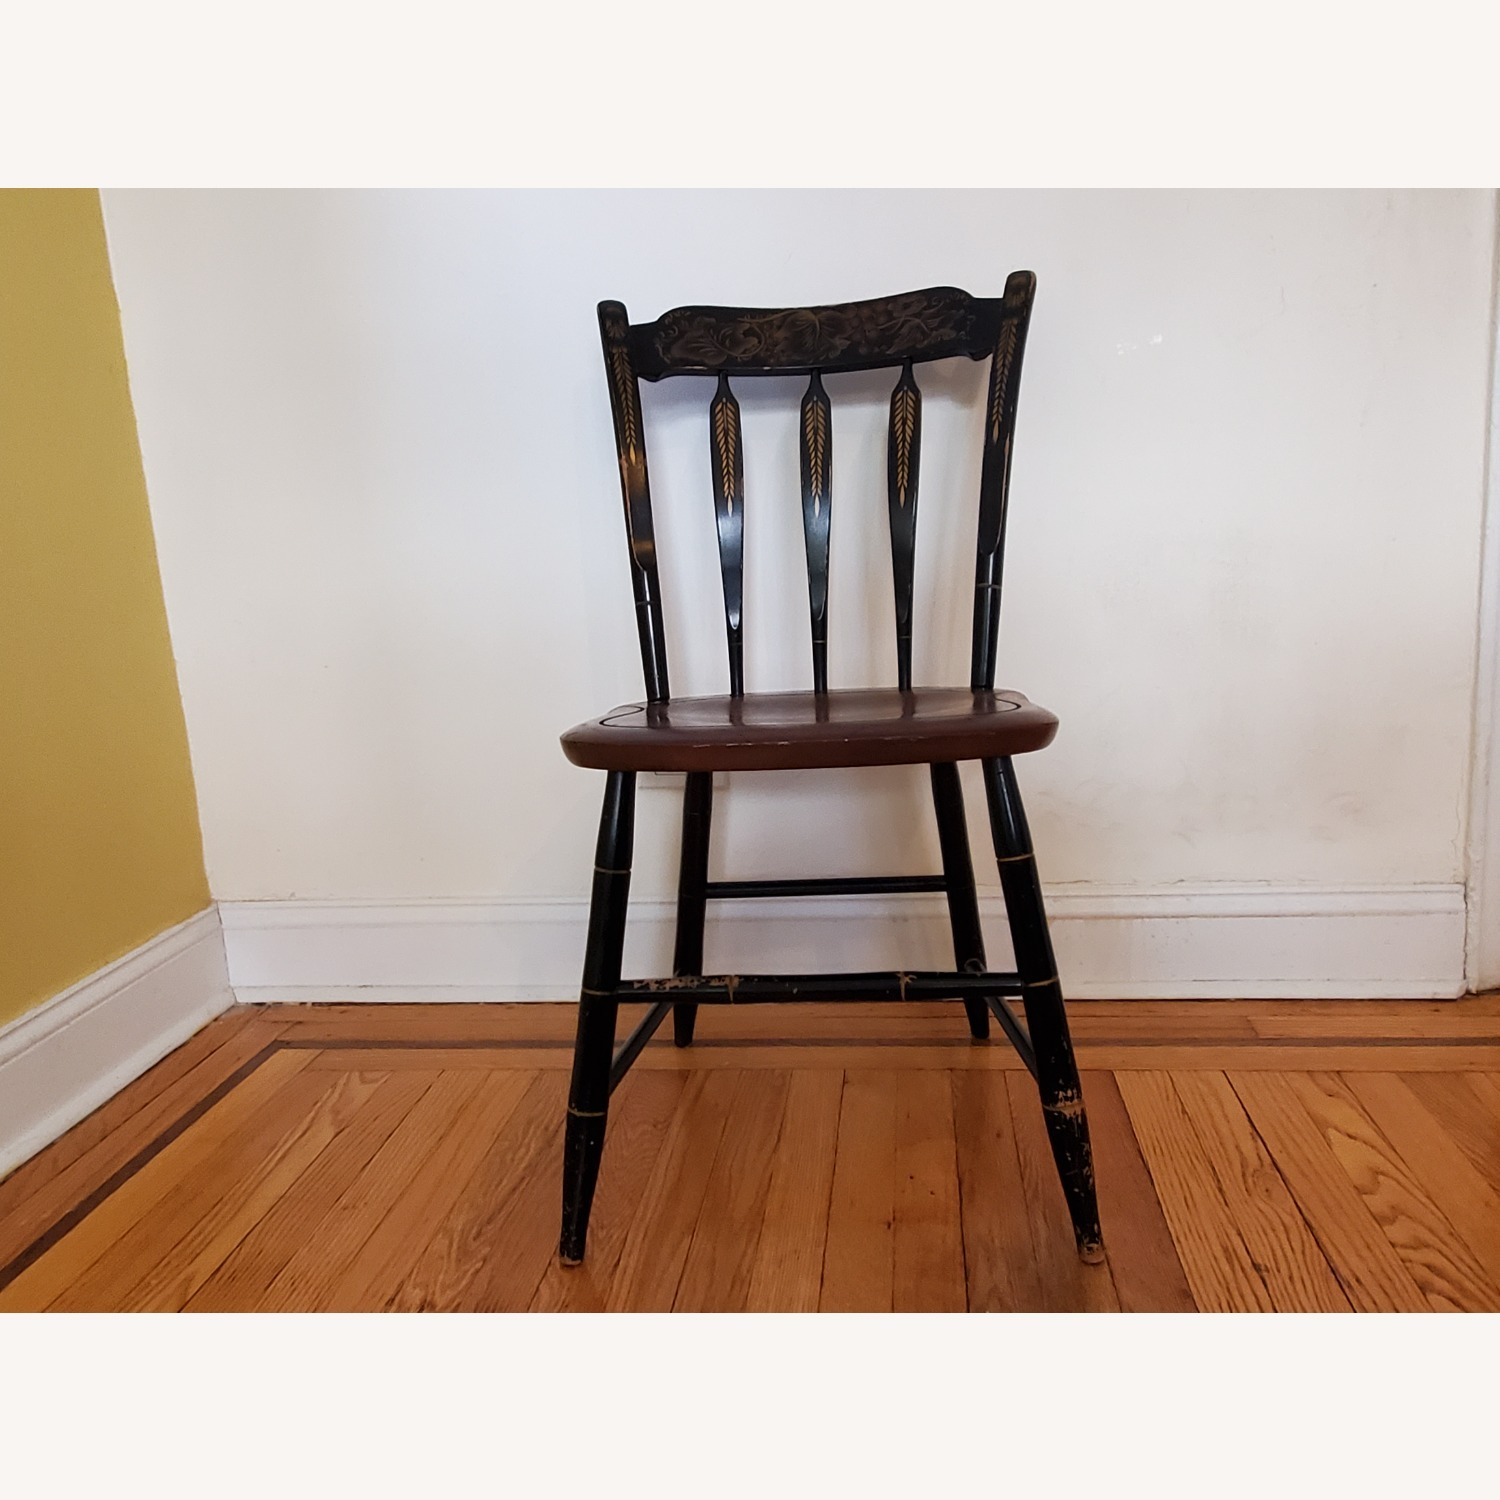 Hitchcock Furniture Signed Black Farmhouse Chair - image-2